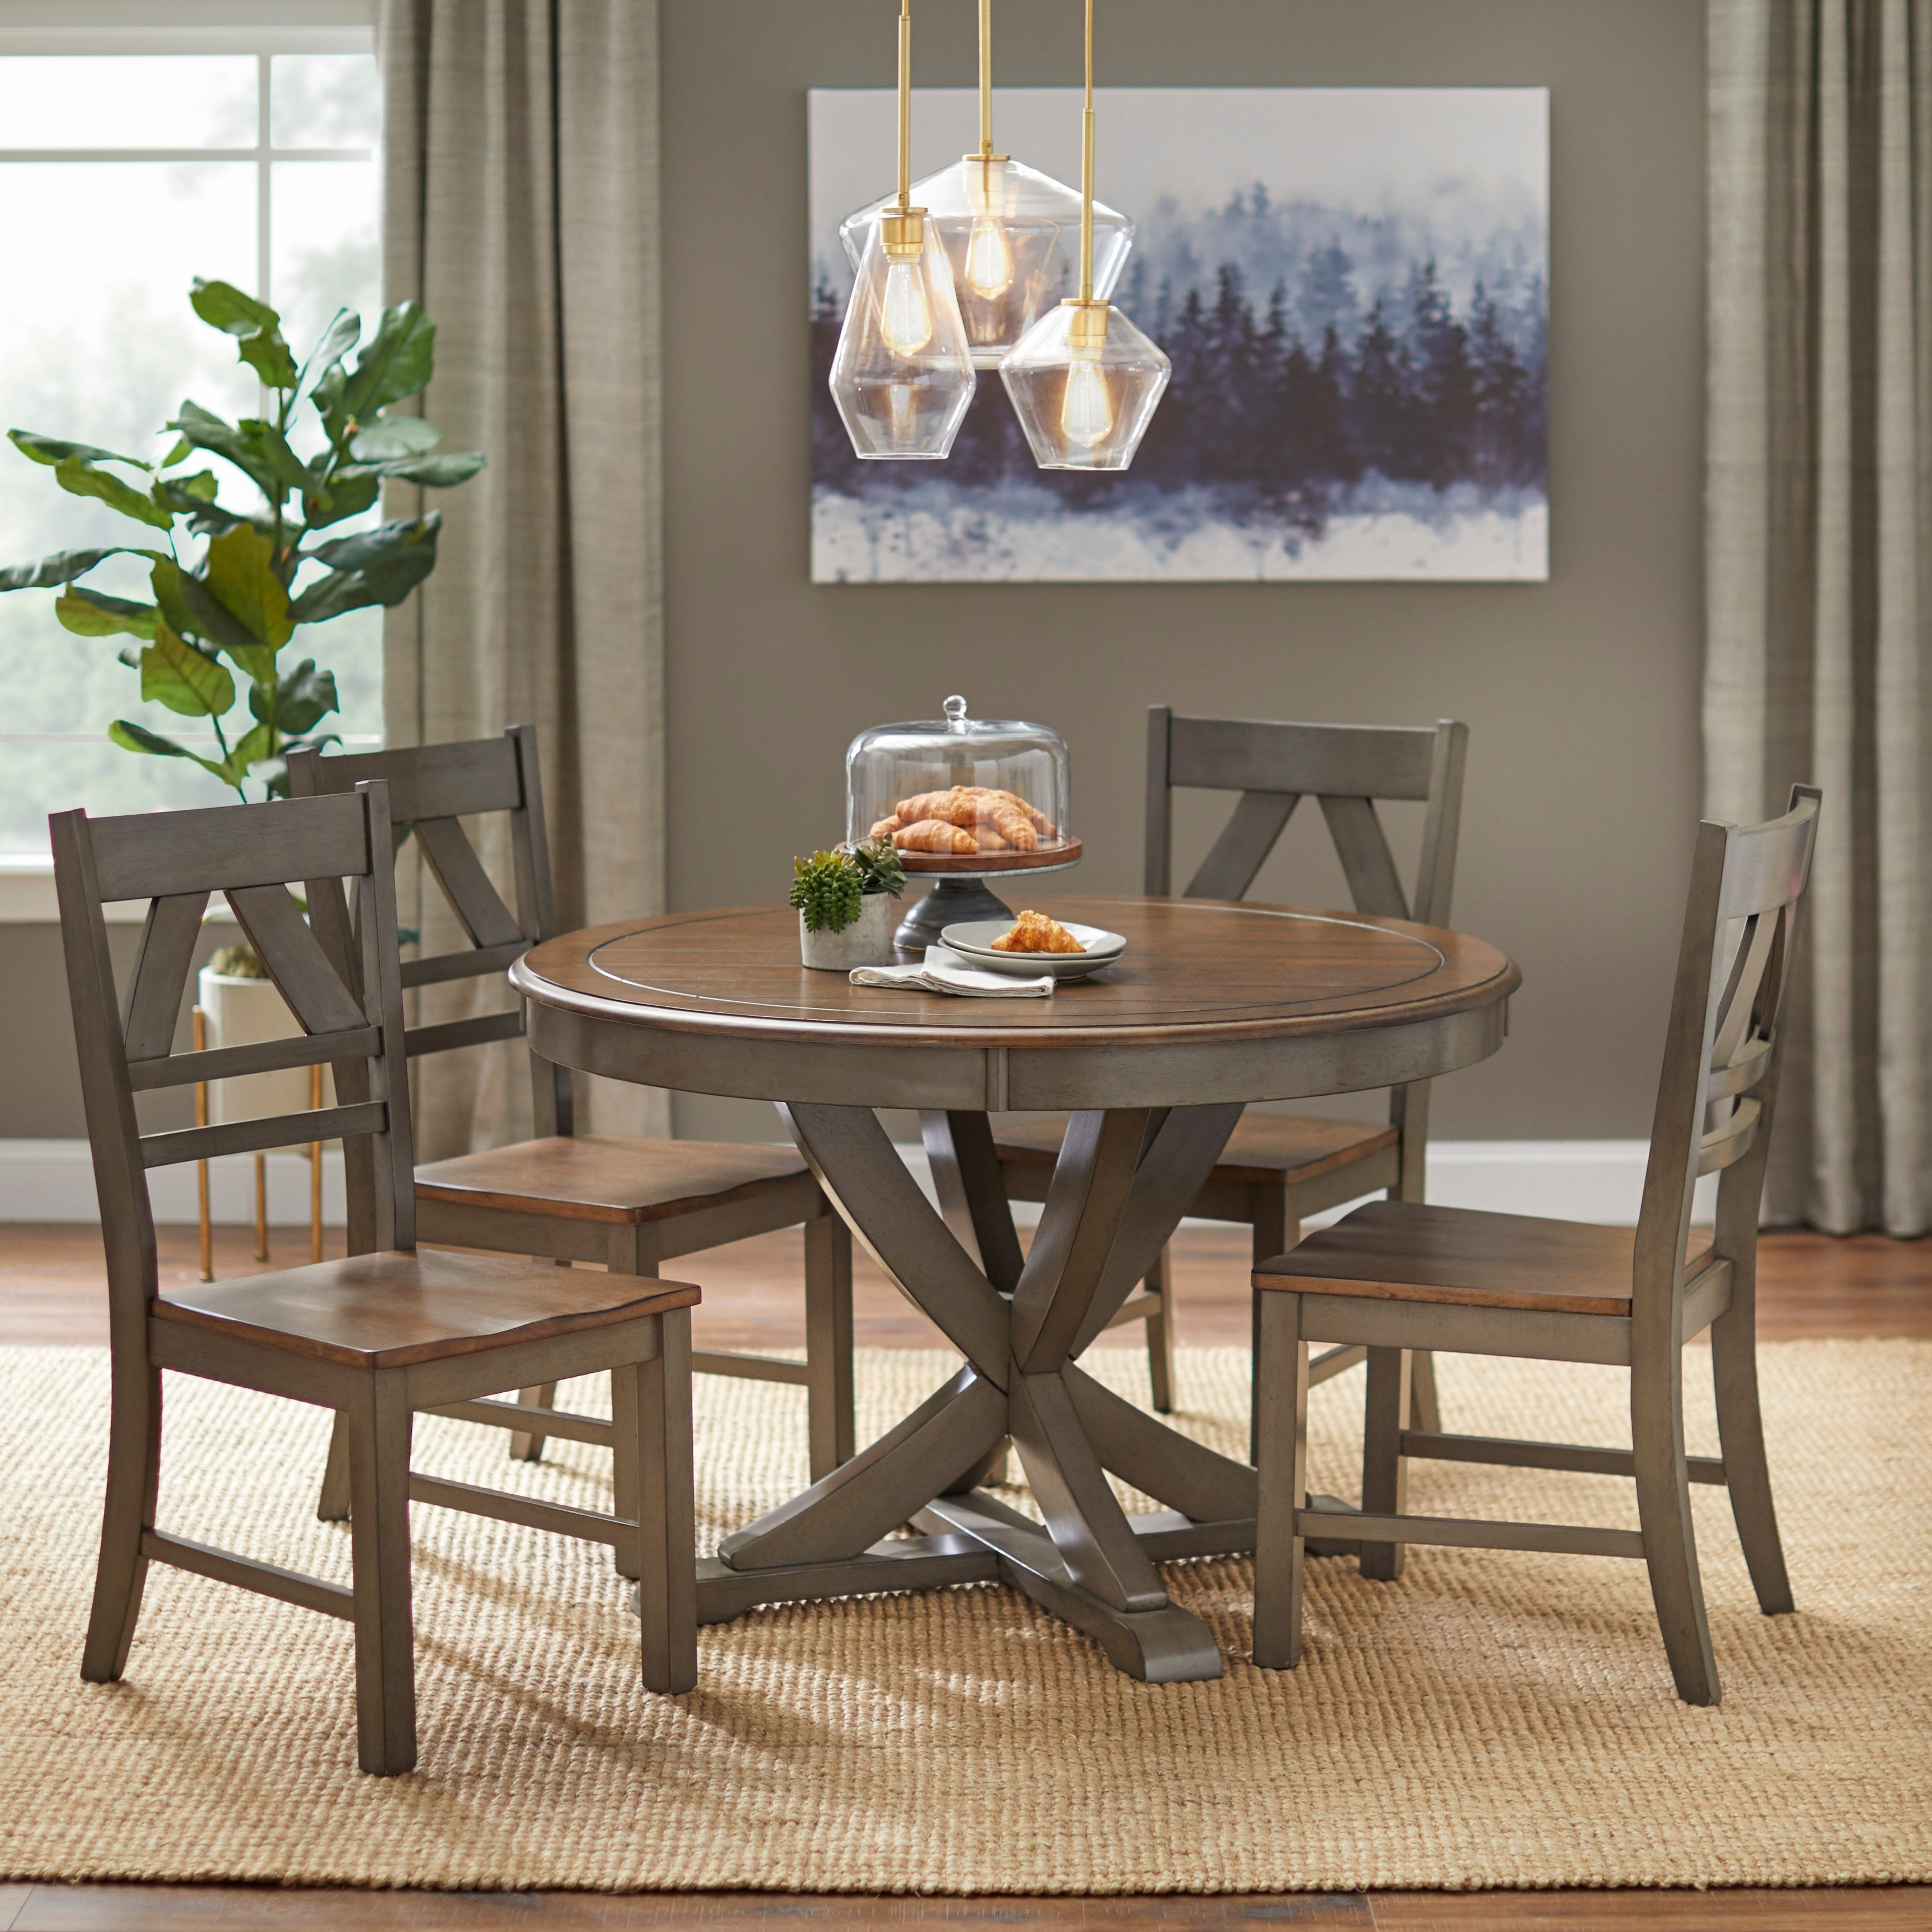 Buy 3 Piece Sets Kitchen & Dining Room Sets Online At Overstock With Most Up To Date Frida 3 Piece Dining Table Sets (View 10 of 25)